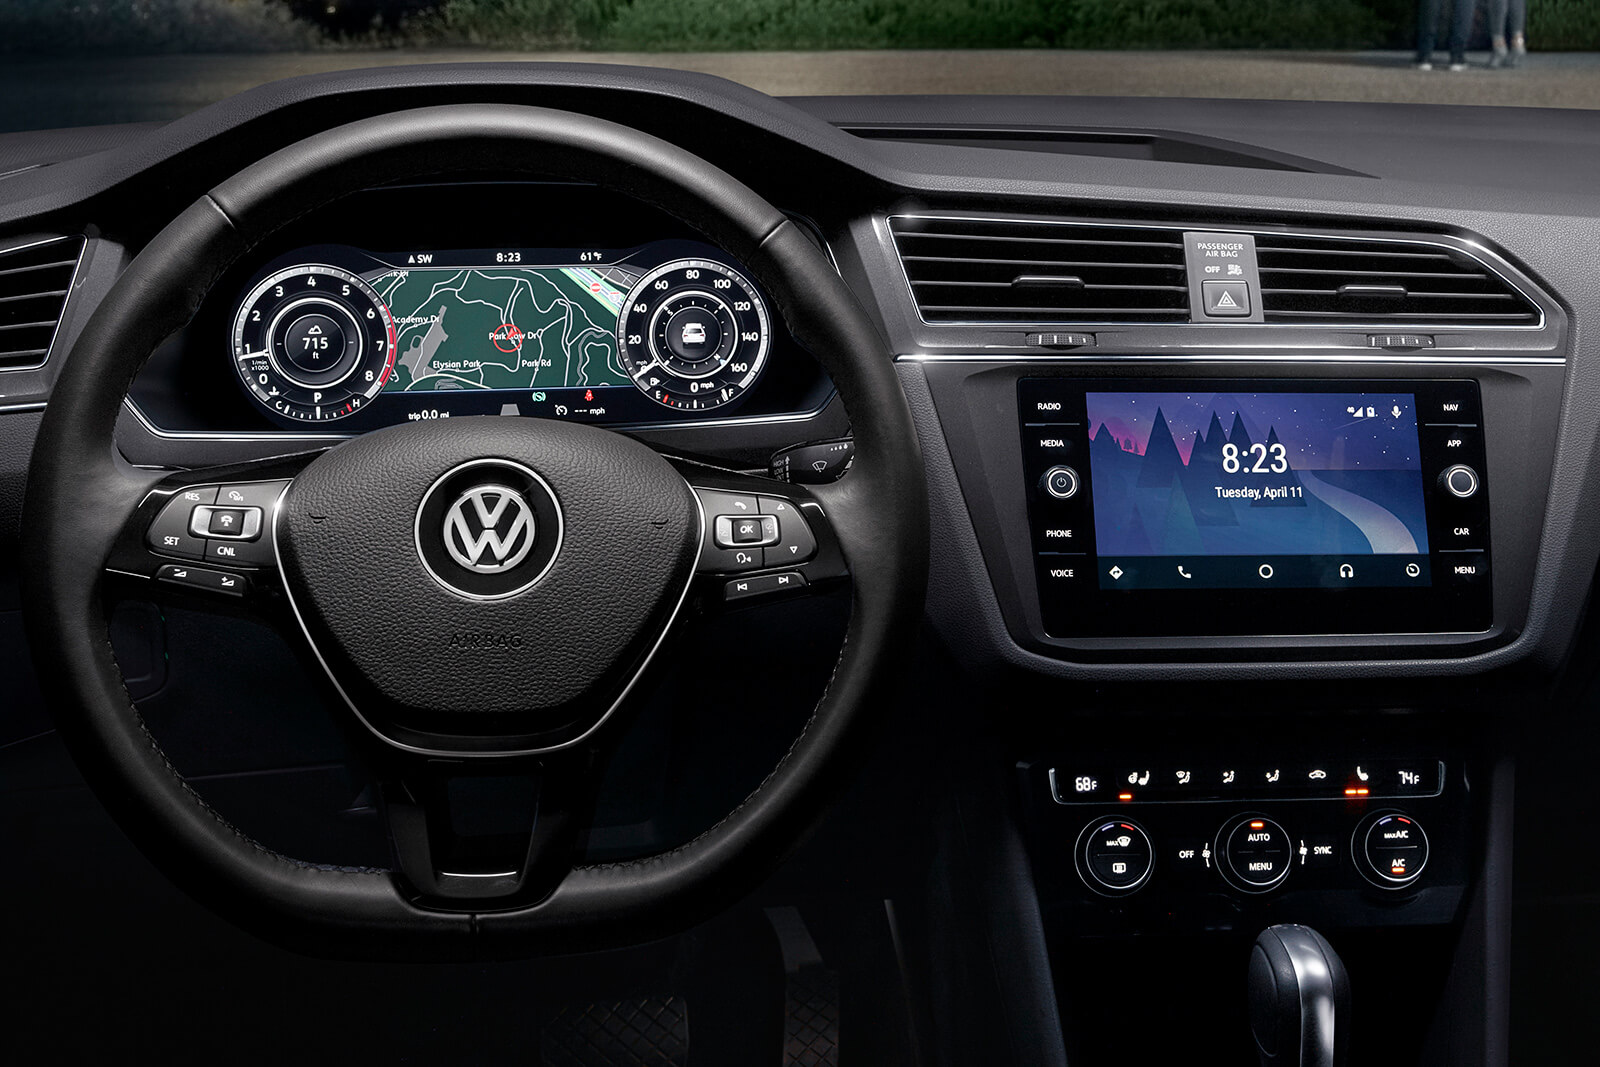 interior view of VW tiguan steering wheel and touch screen